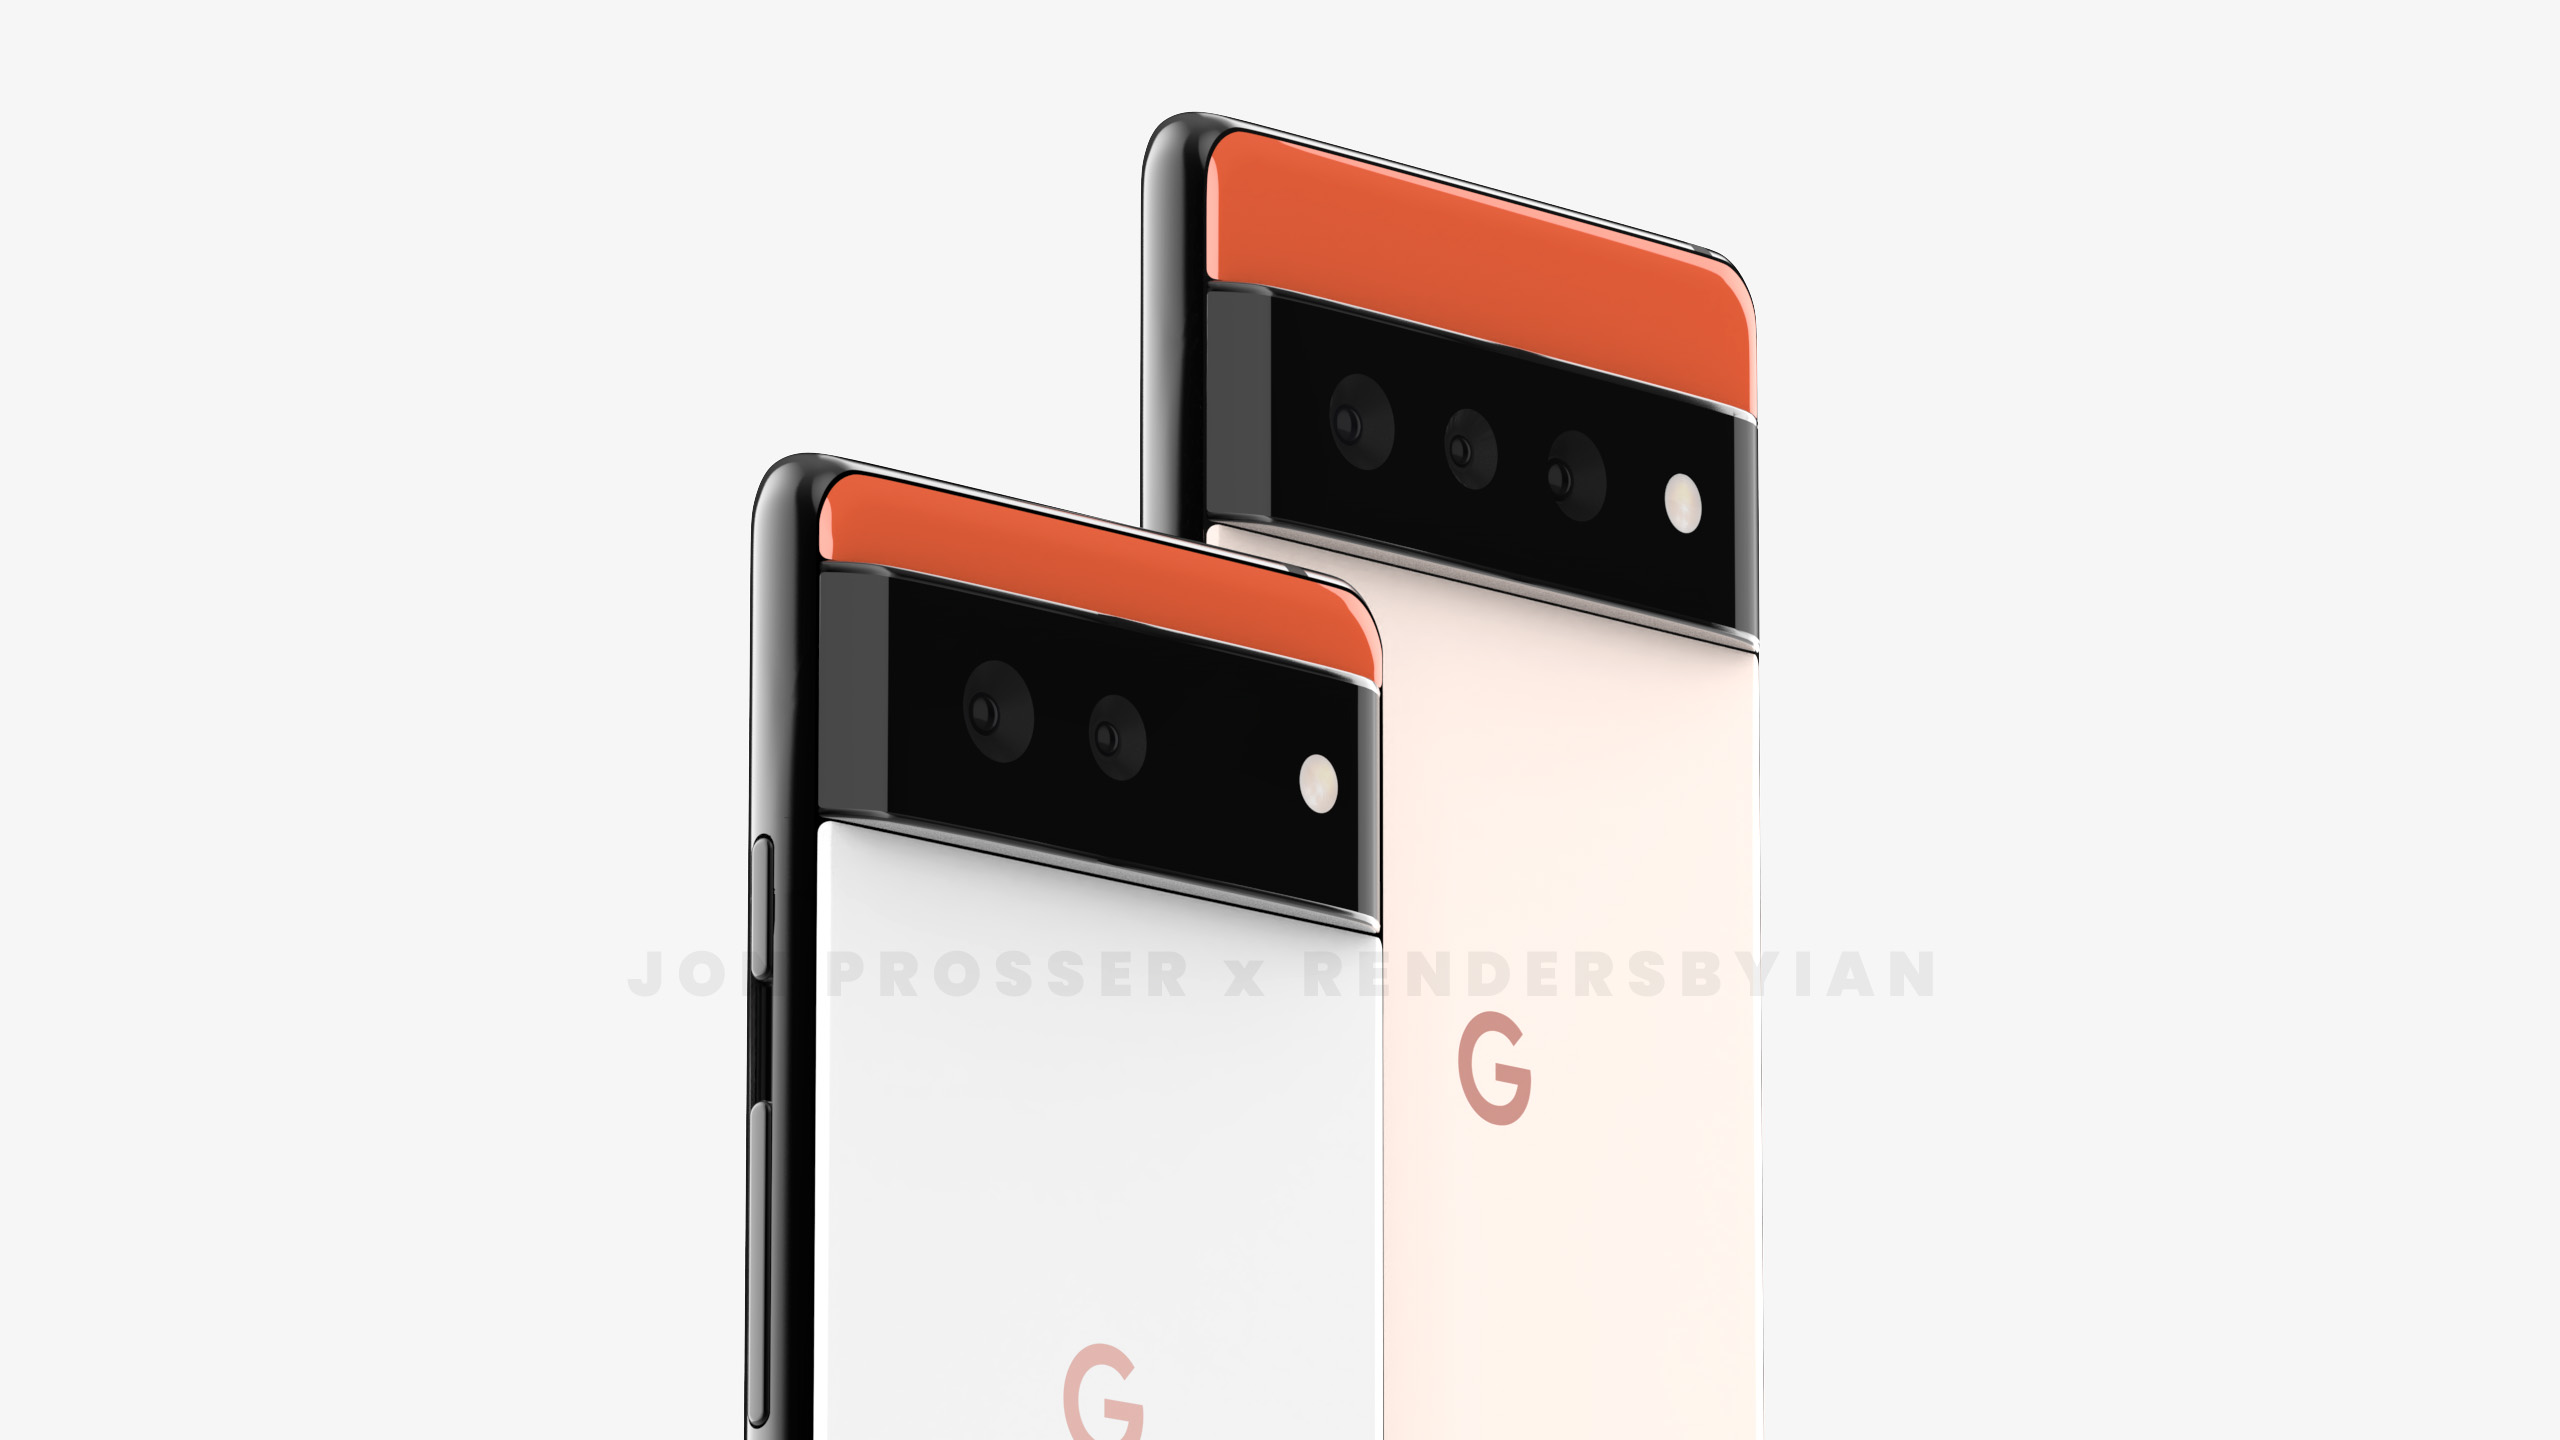 Google Pixel 6 Pro – Images And Specification Leaked Prior To Launch